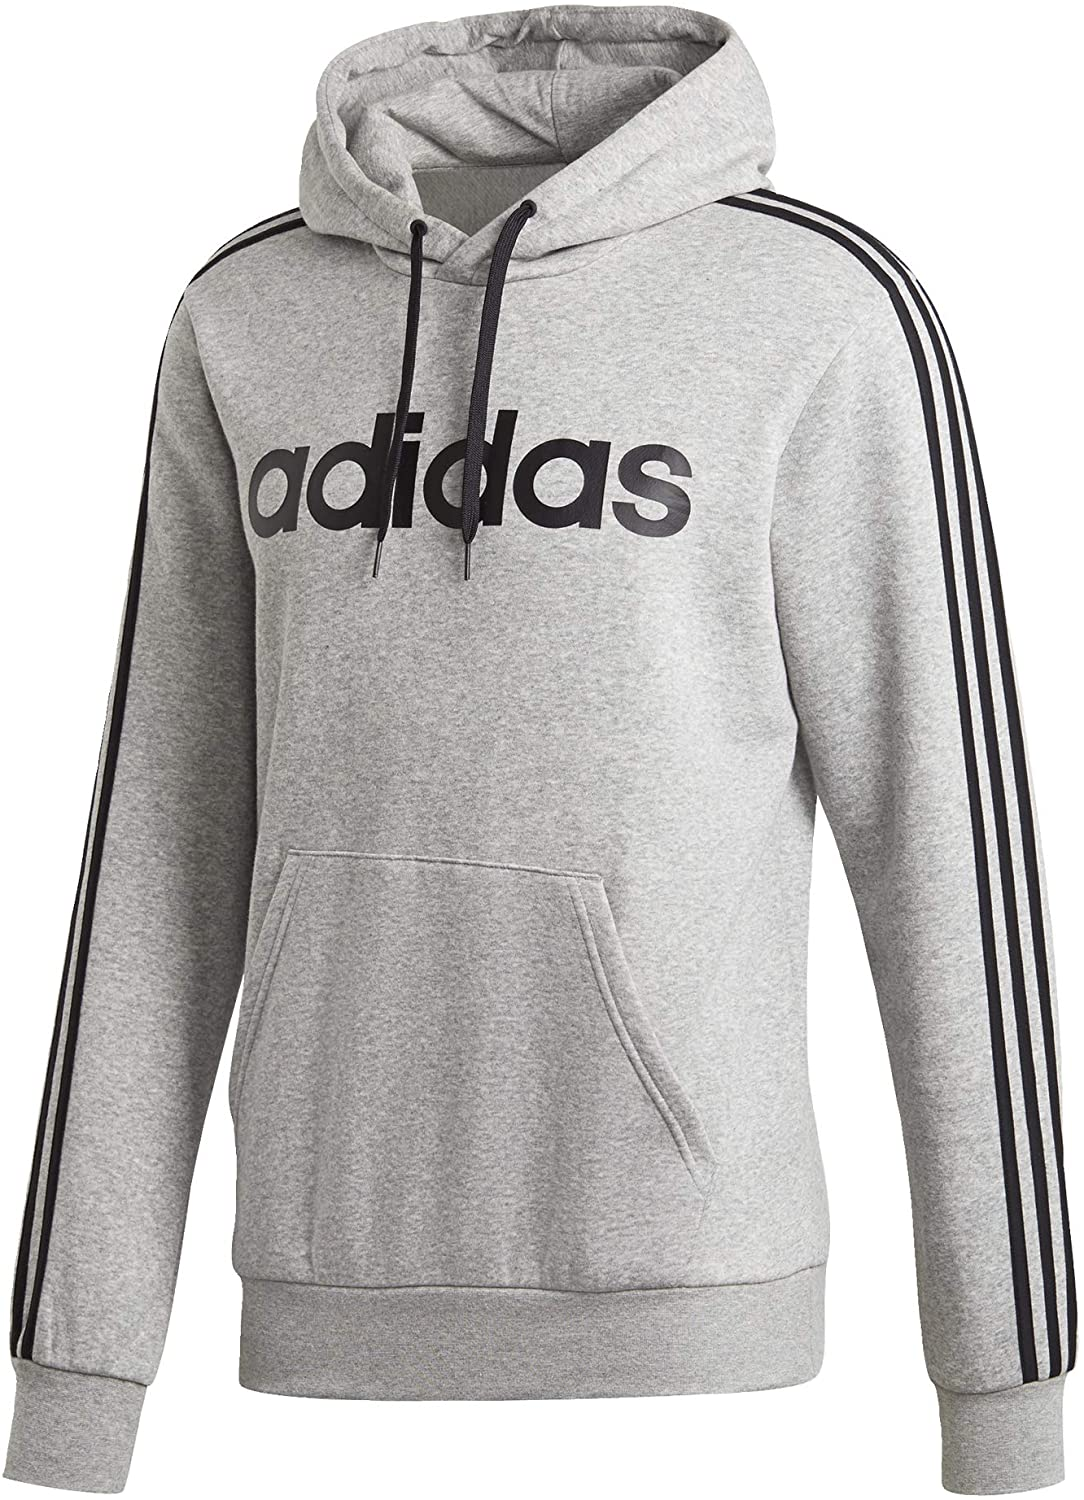 Adidas Men's Essentials 3 stripes pullover hoodie